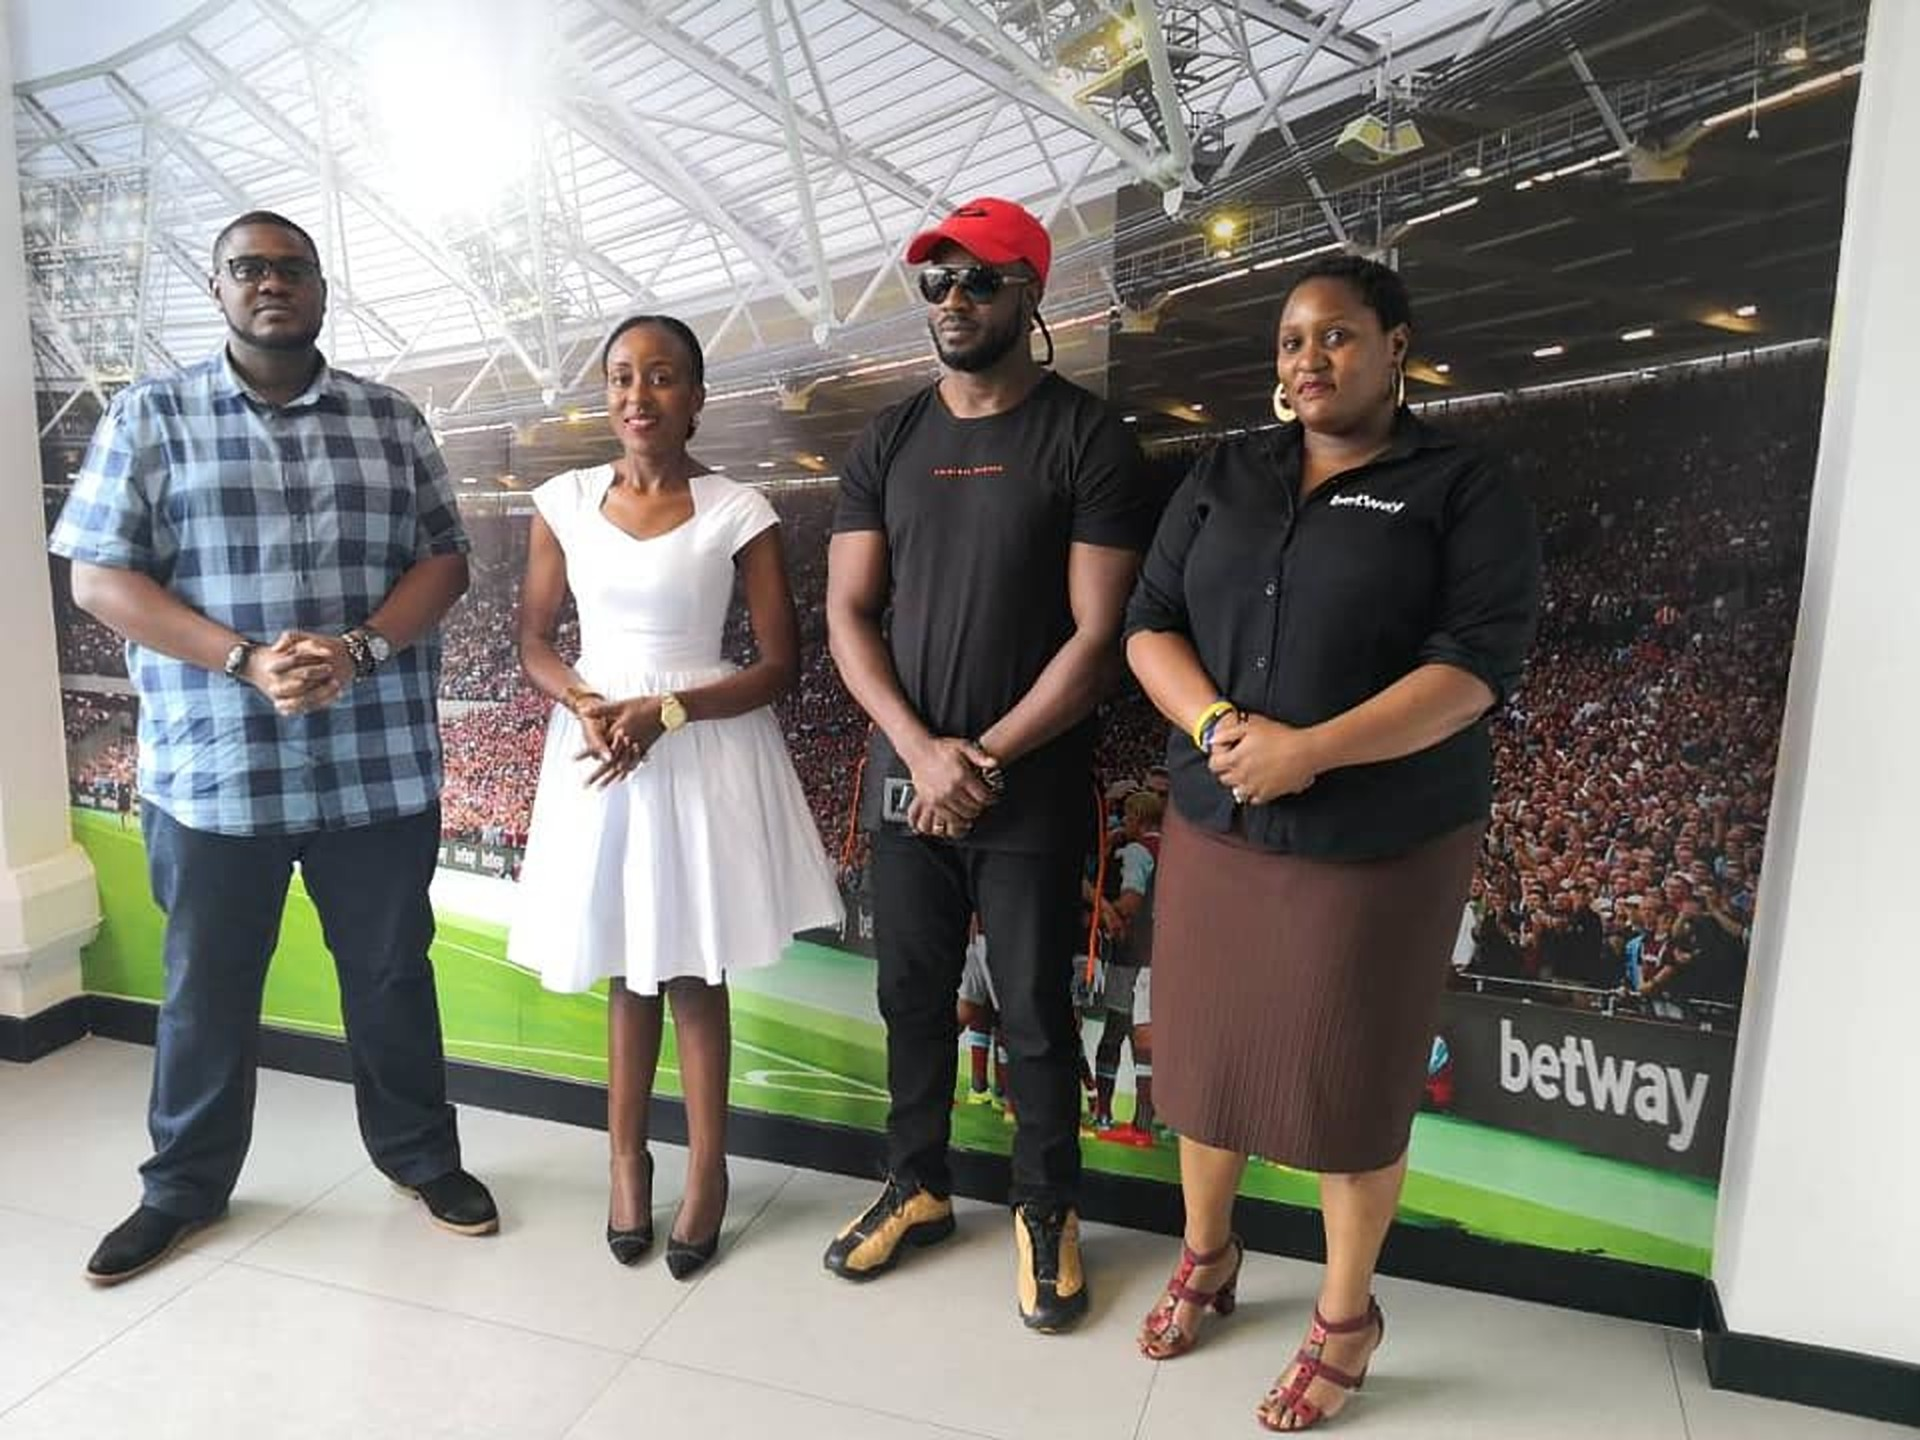 Artiste Moses Ssali alias BebeCool unveils the partnership with BetWay for the upcoming concert as officials look on